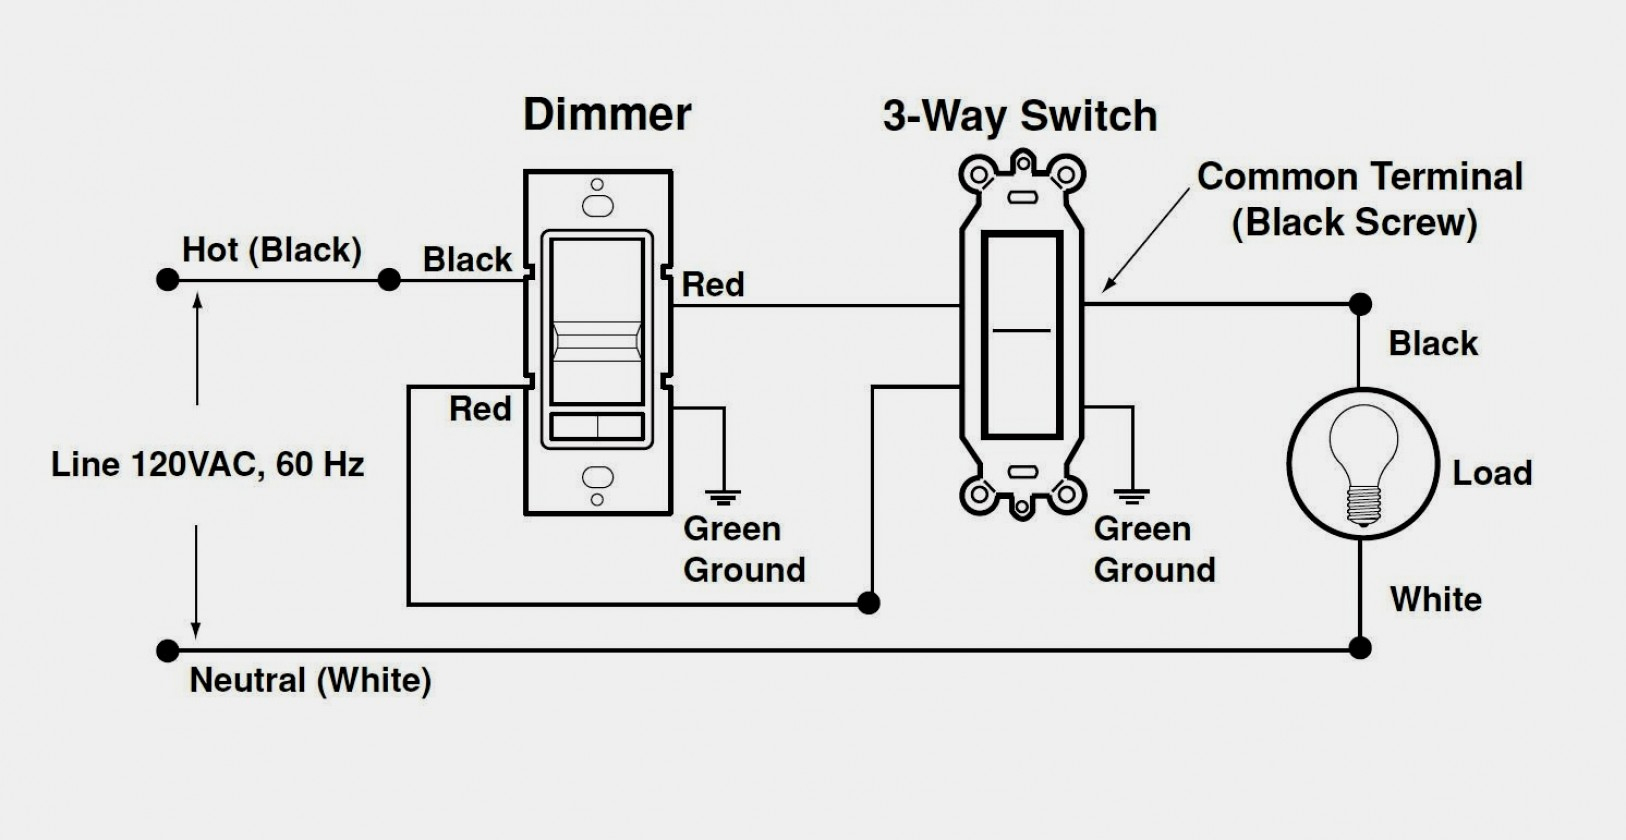 Wonderful Lutron Led Dimmer Switch Wiring Diagram Maestro Switches - Lutron Maestro Wiring Diagram